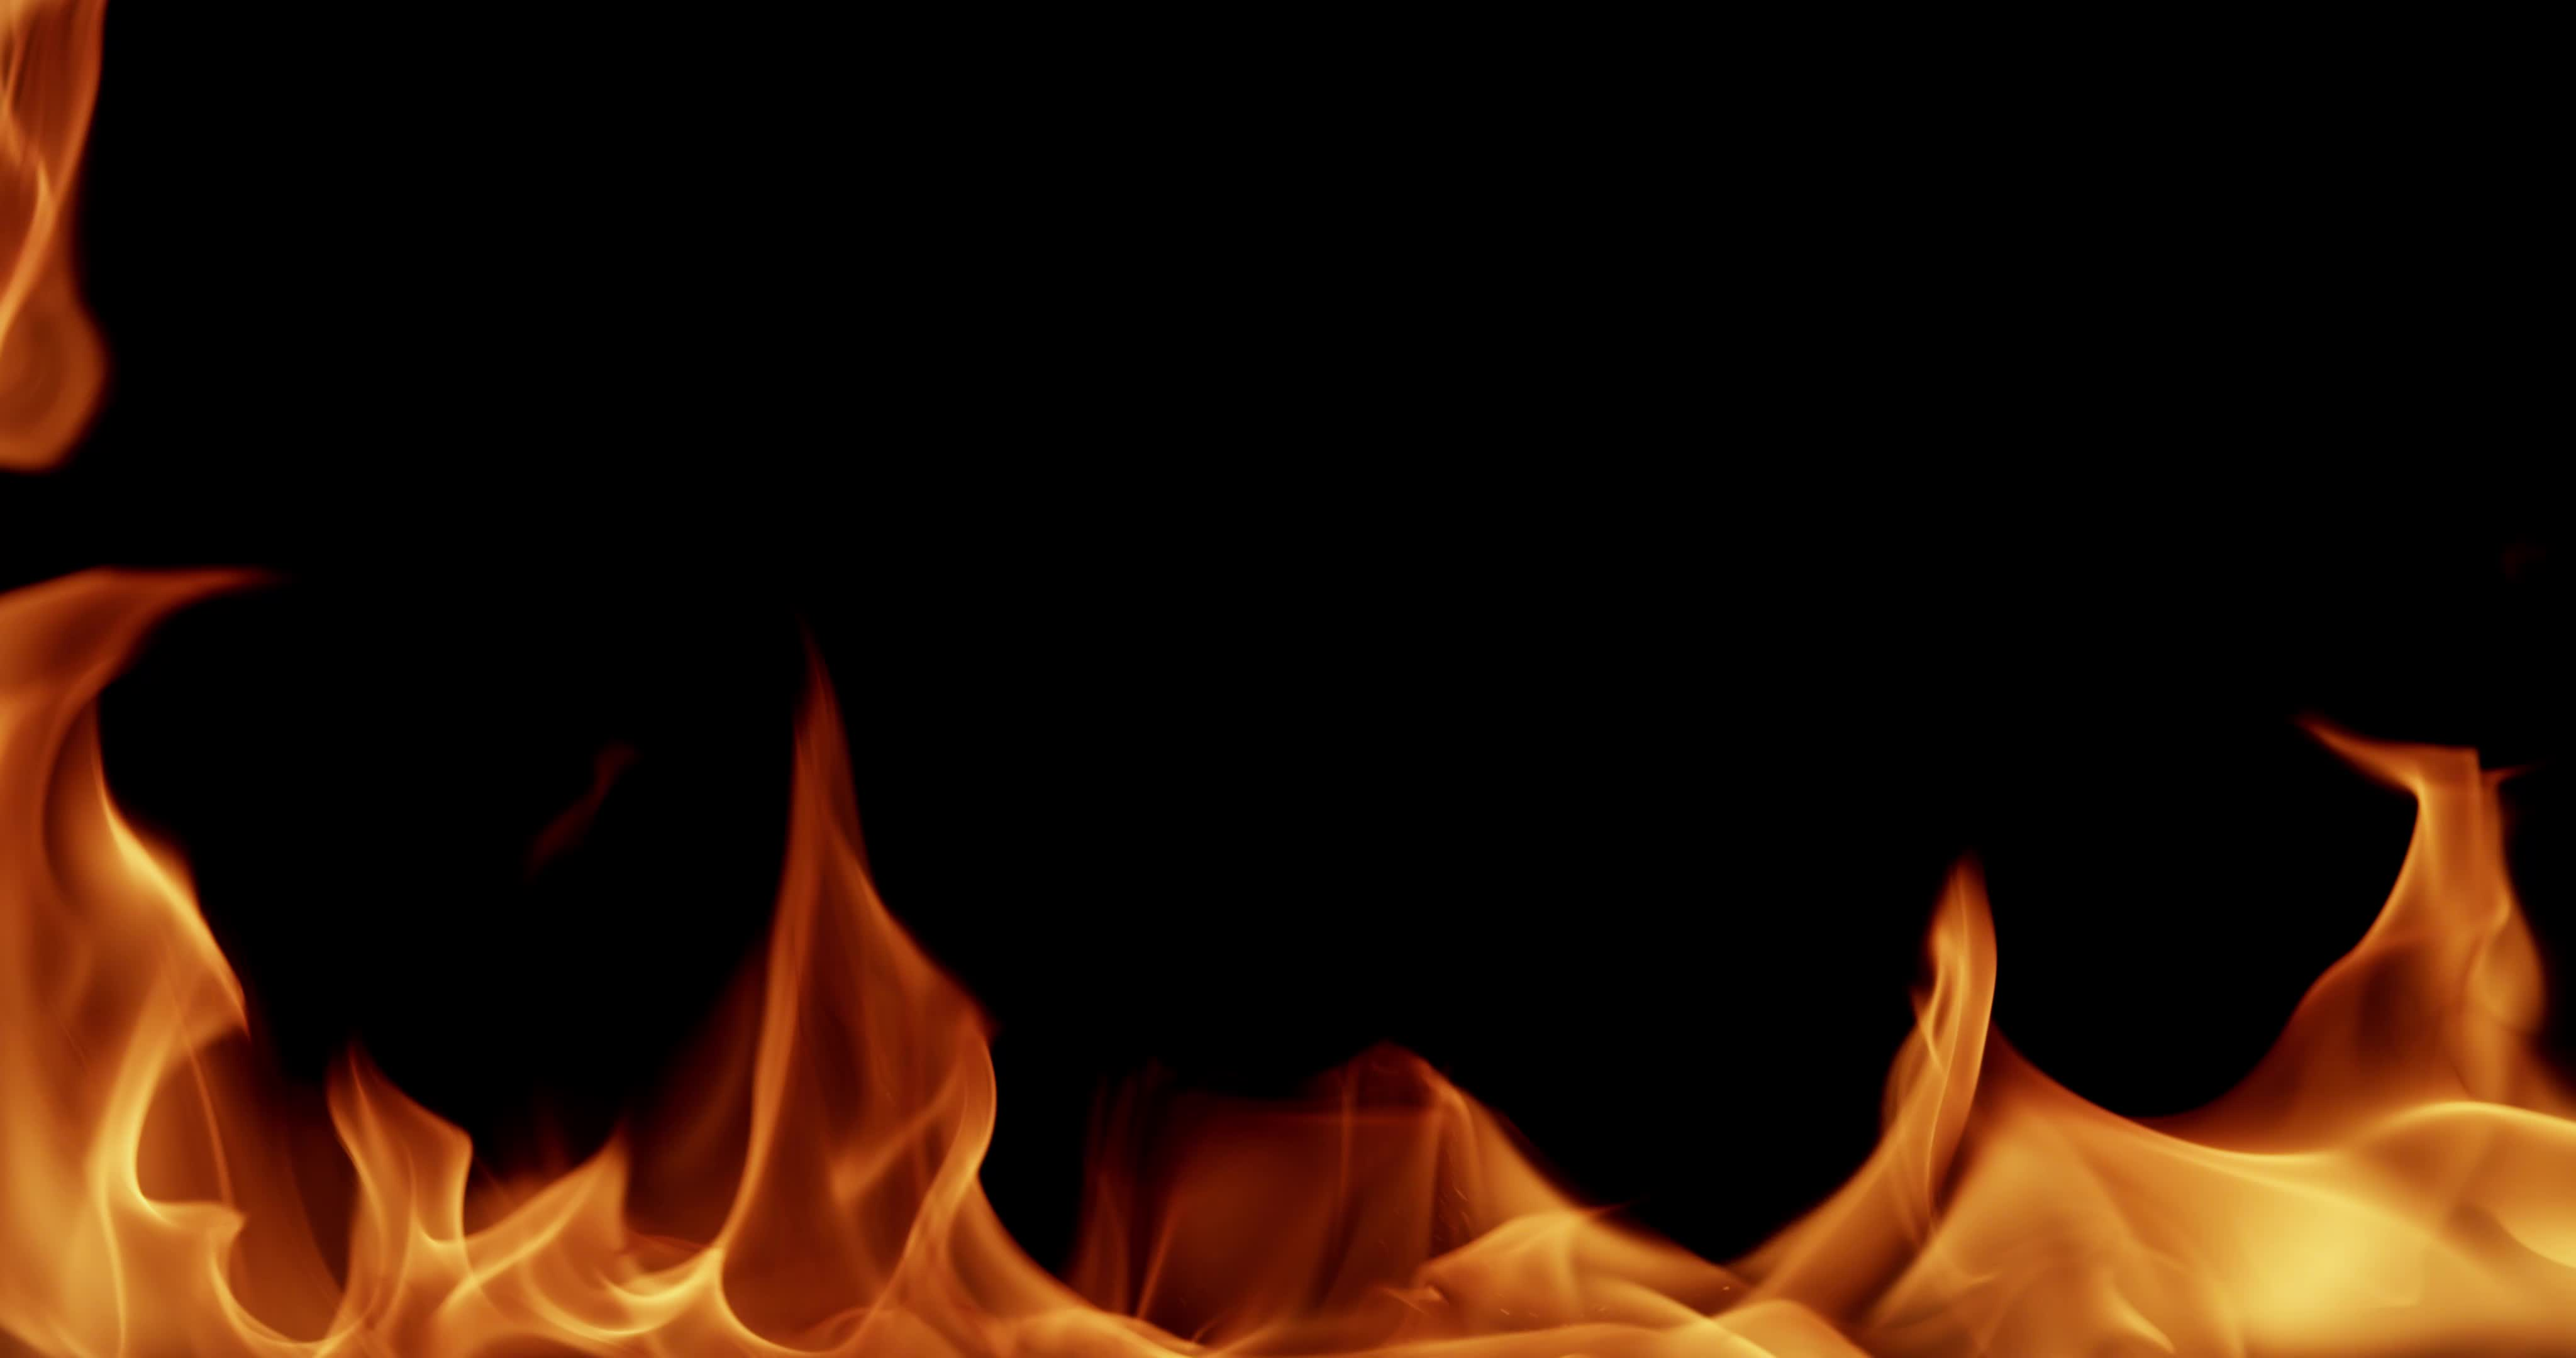 Fire 63 - 45s - 4k res - FREE STOCK FOOTAGE GIFs